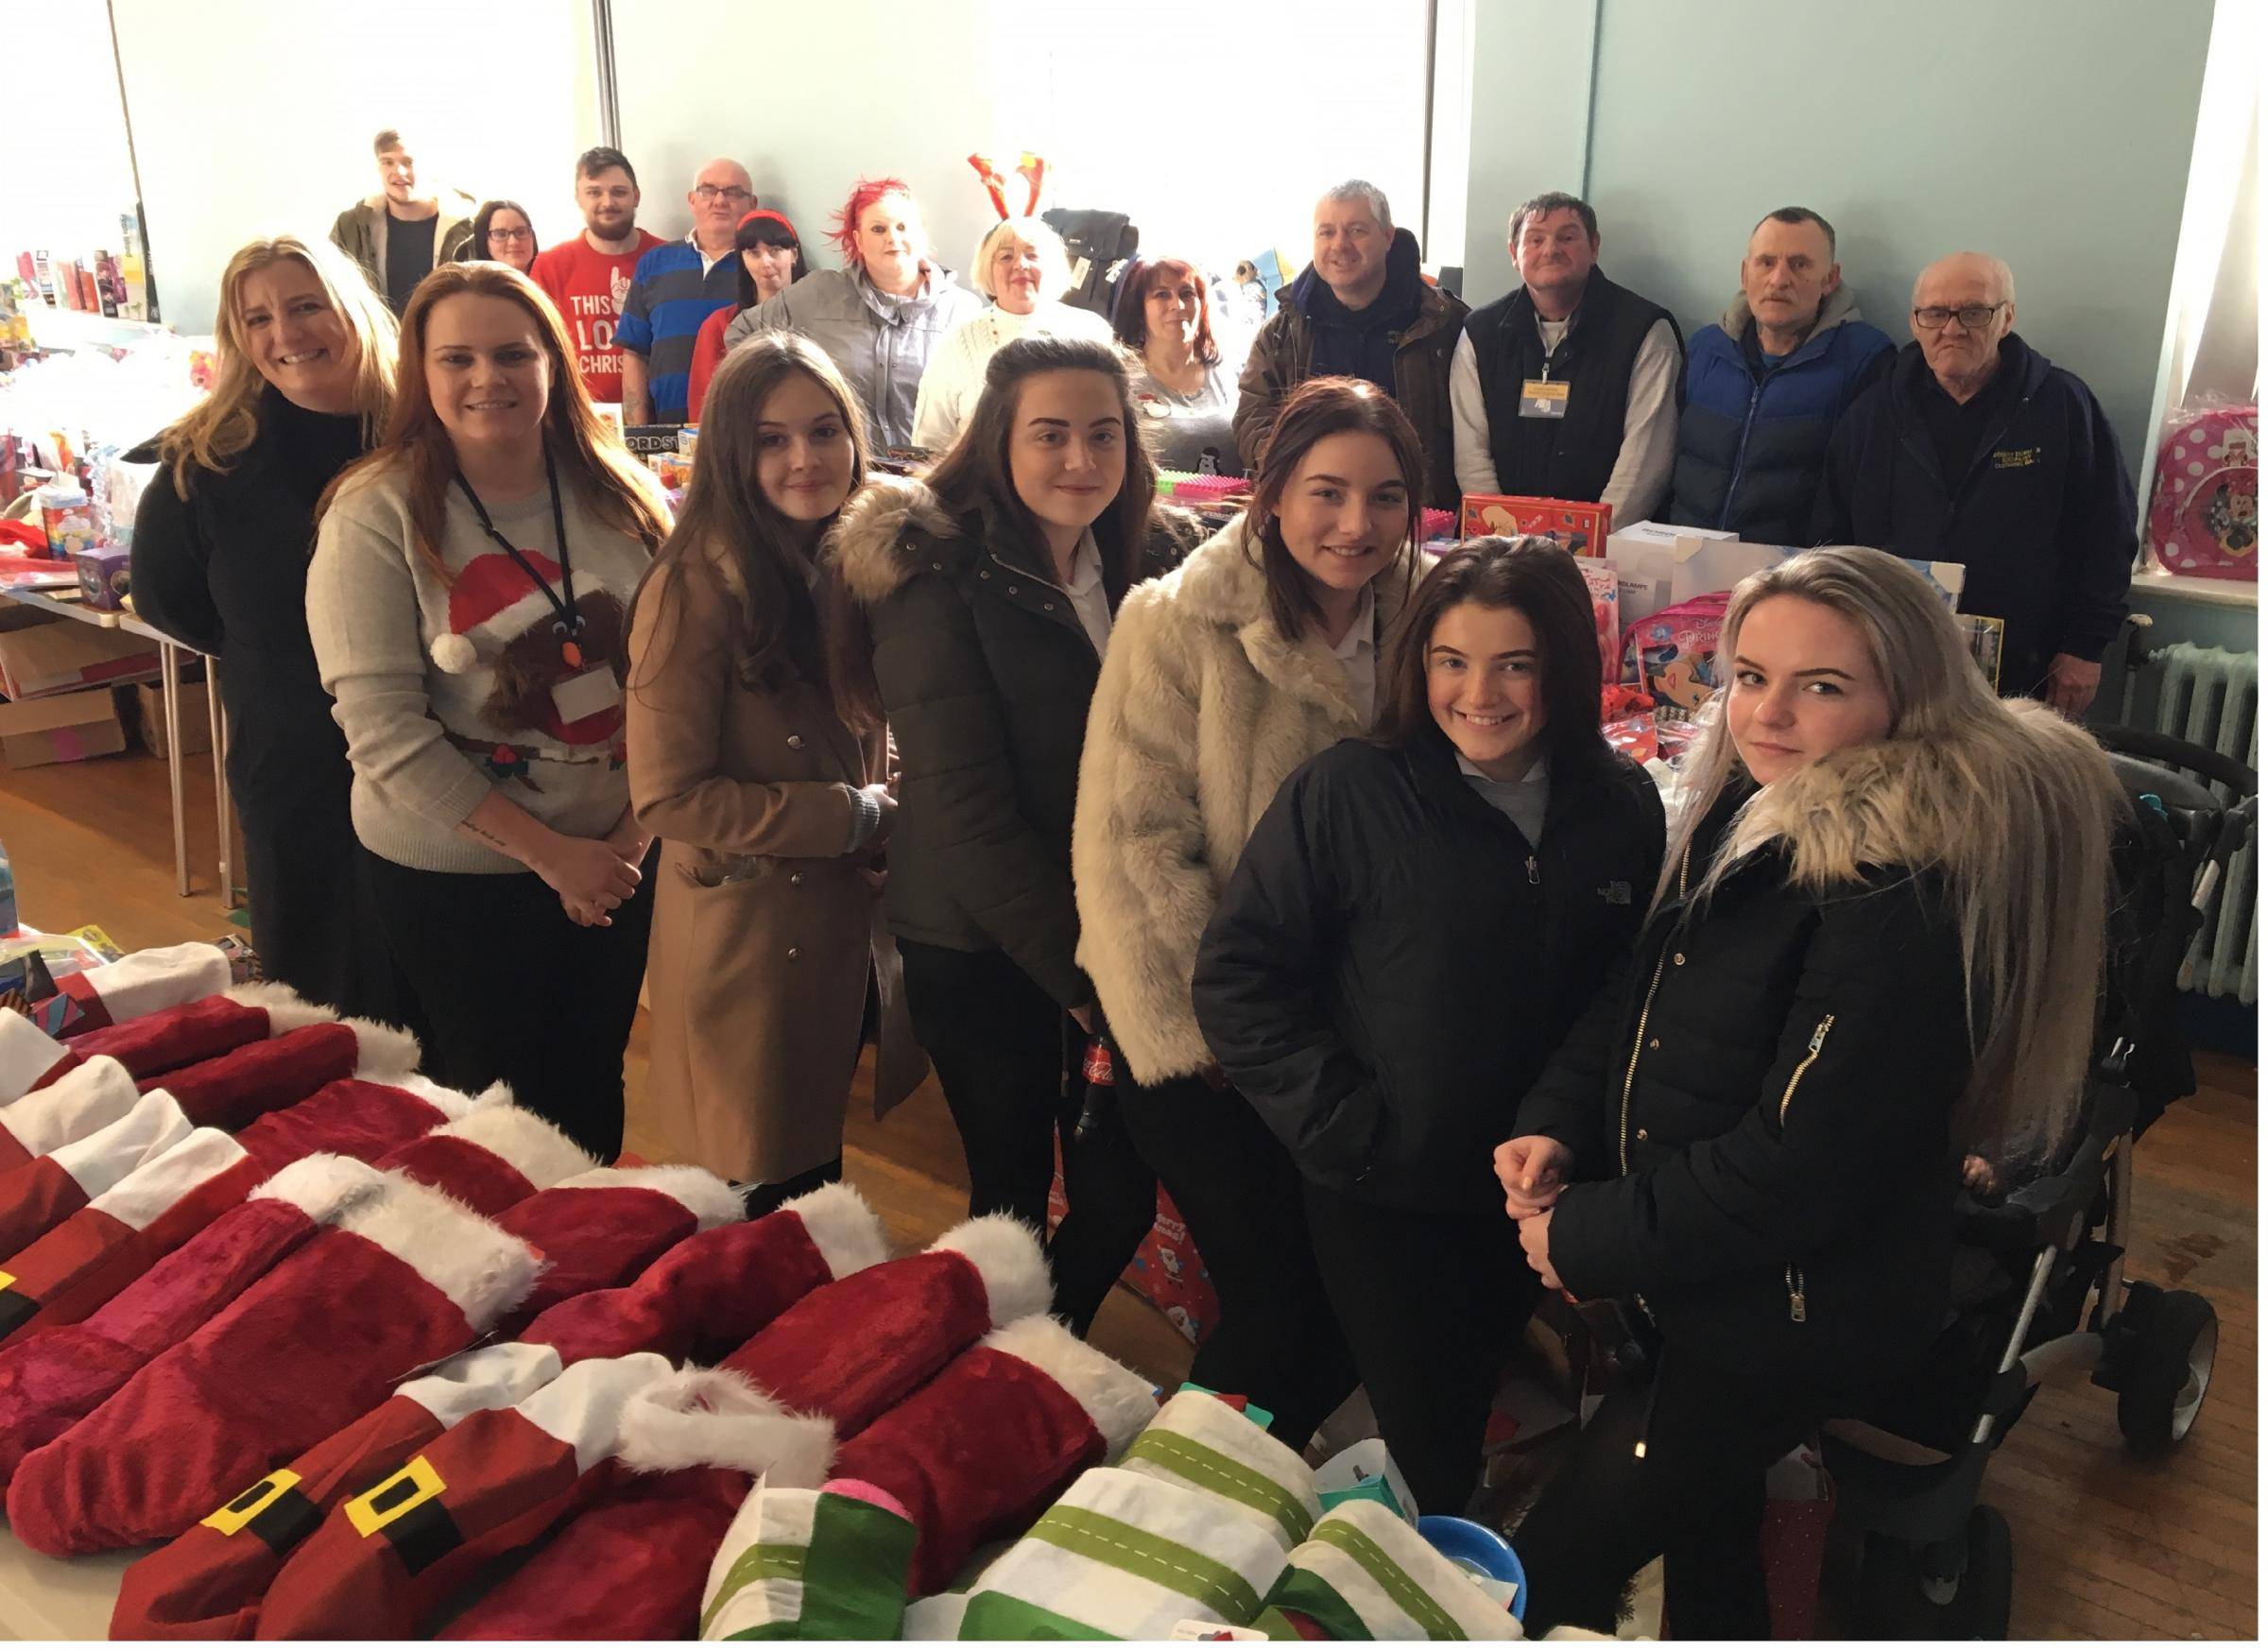 Hundreds of toys were handed out by the County Durham Socialist Clothing Bank, in Brandon